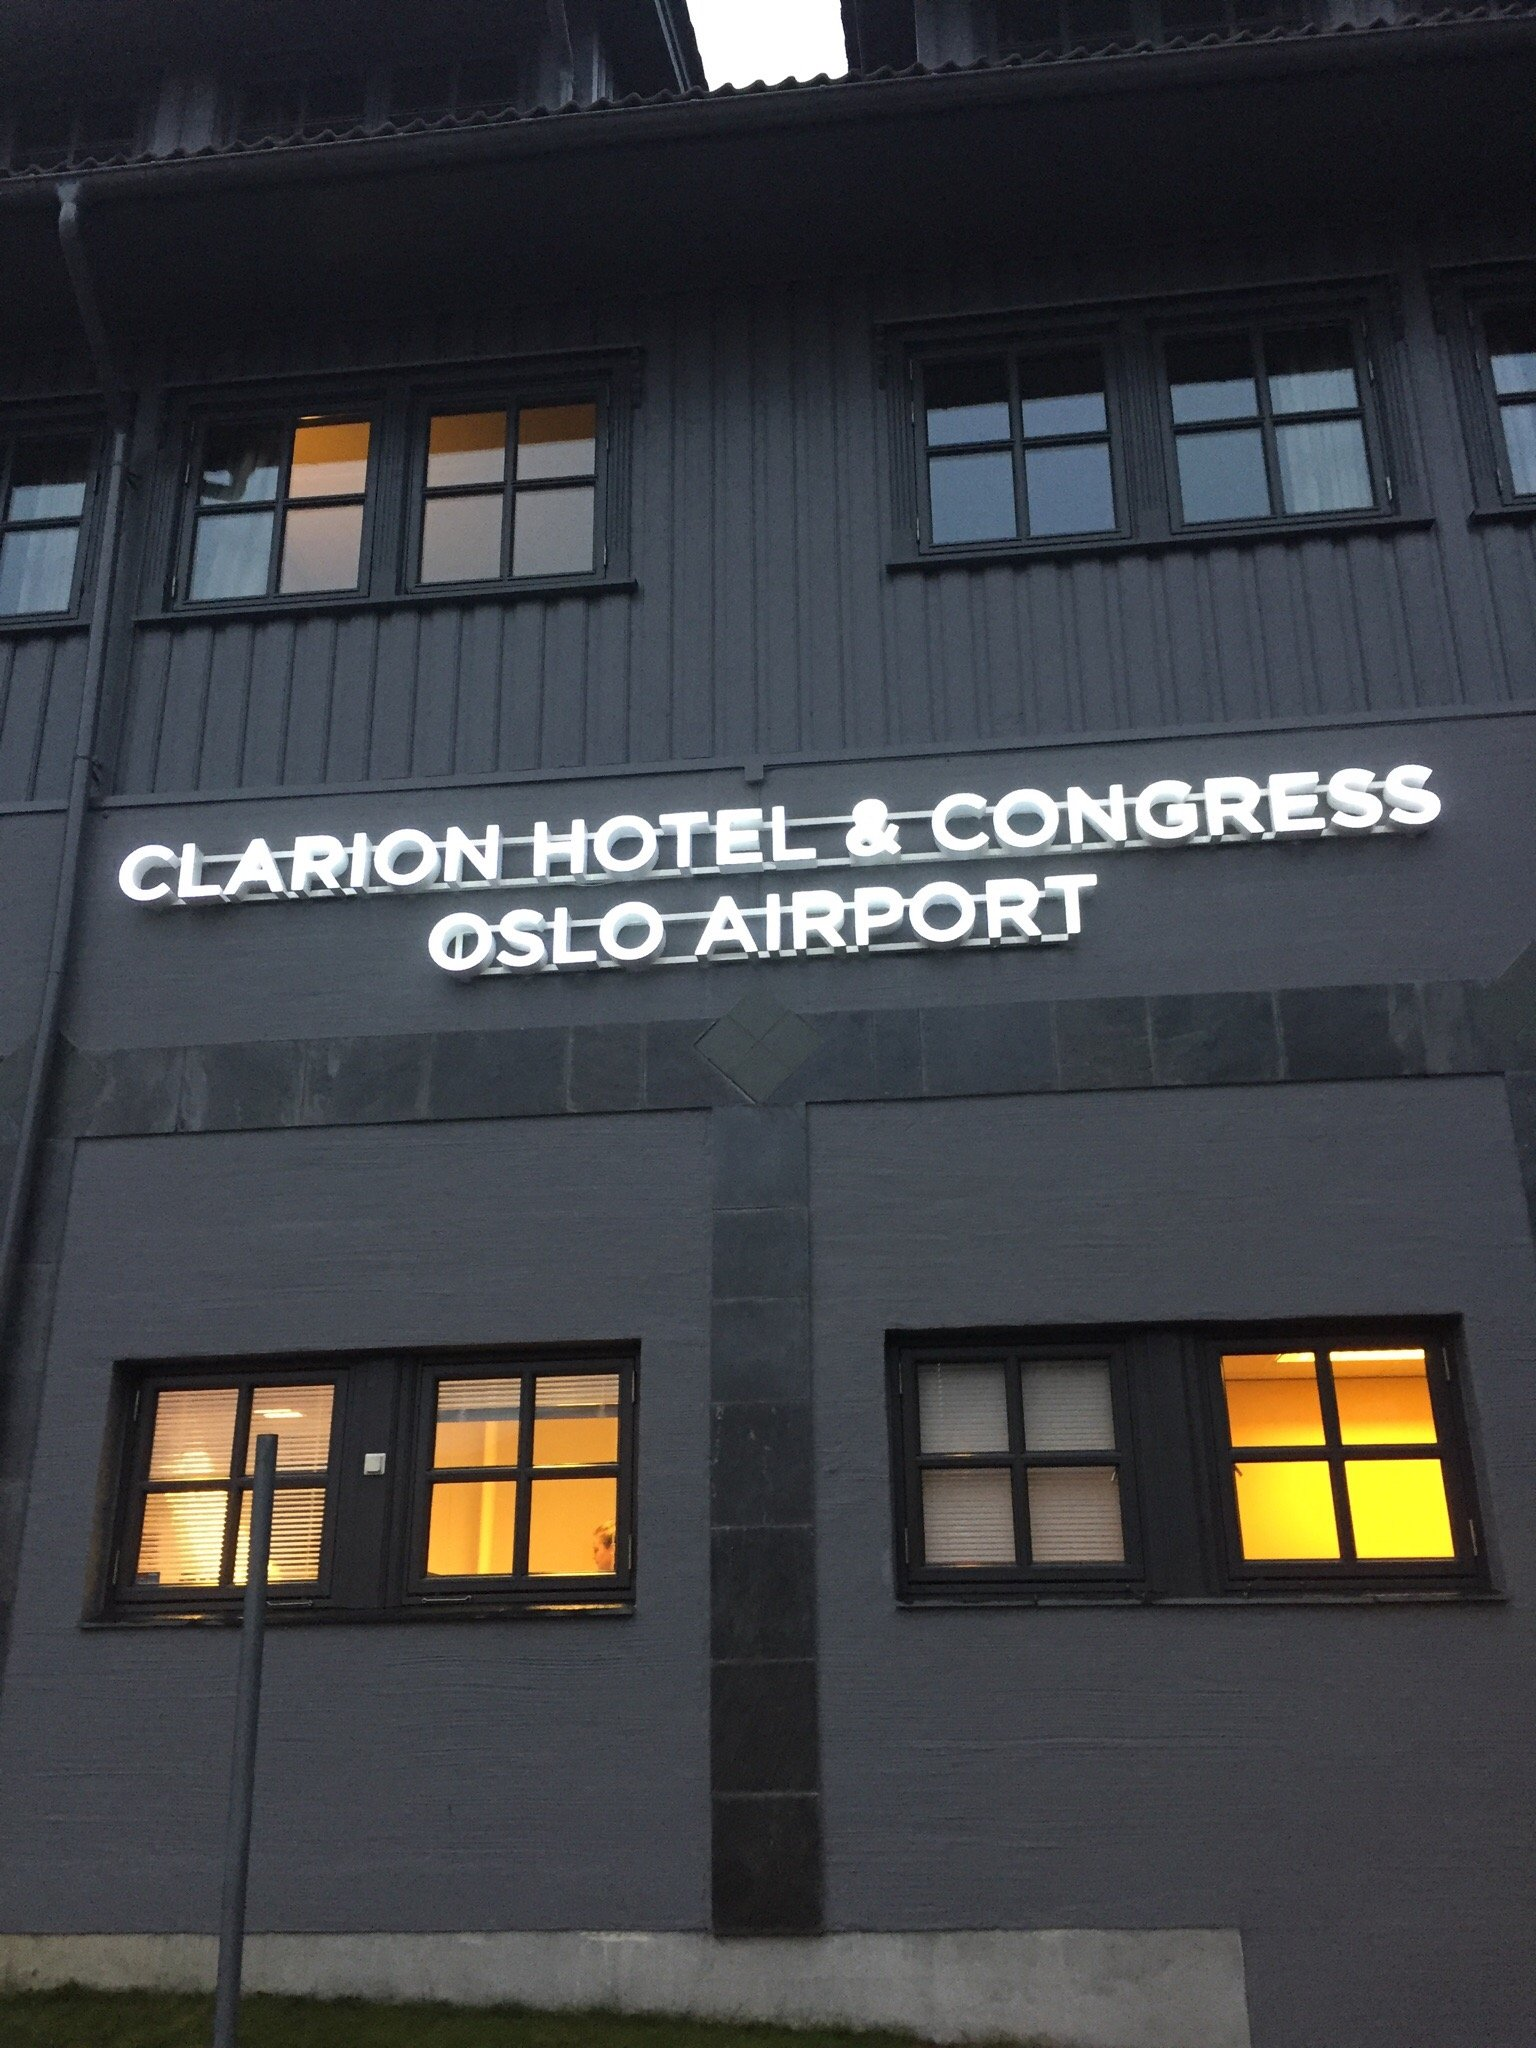 Clarion Hotel & Congress Oslo Airport